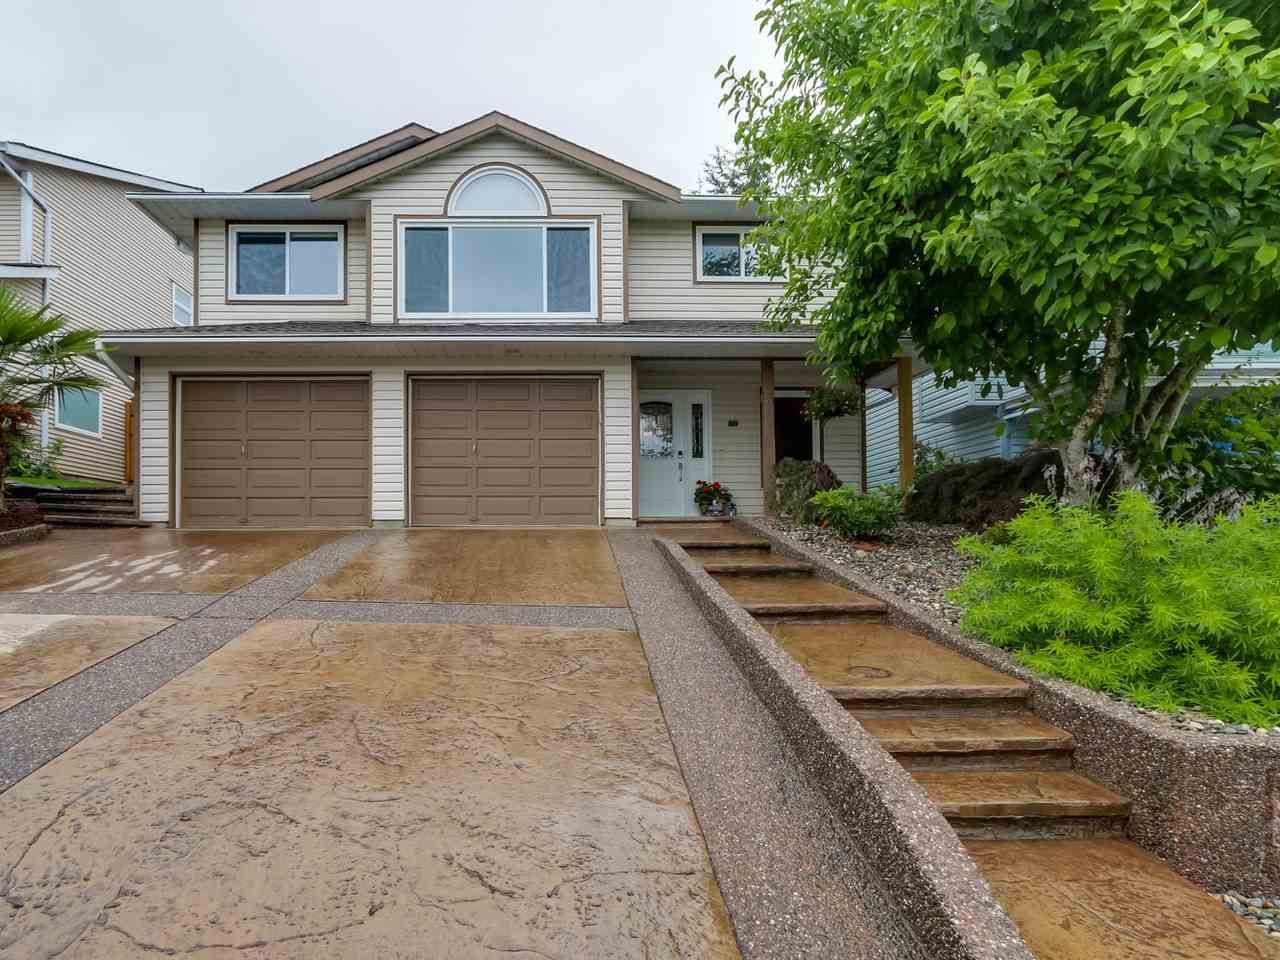 Main Photo: 2933 CORD Avenue in Coquitlam: Canyon Springs House for sale : MLS®# R2114712